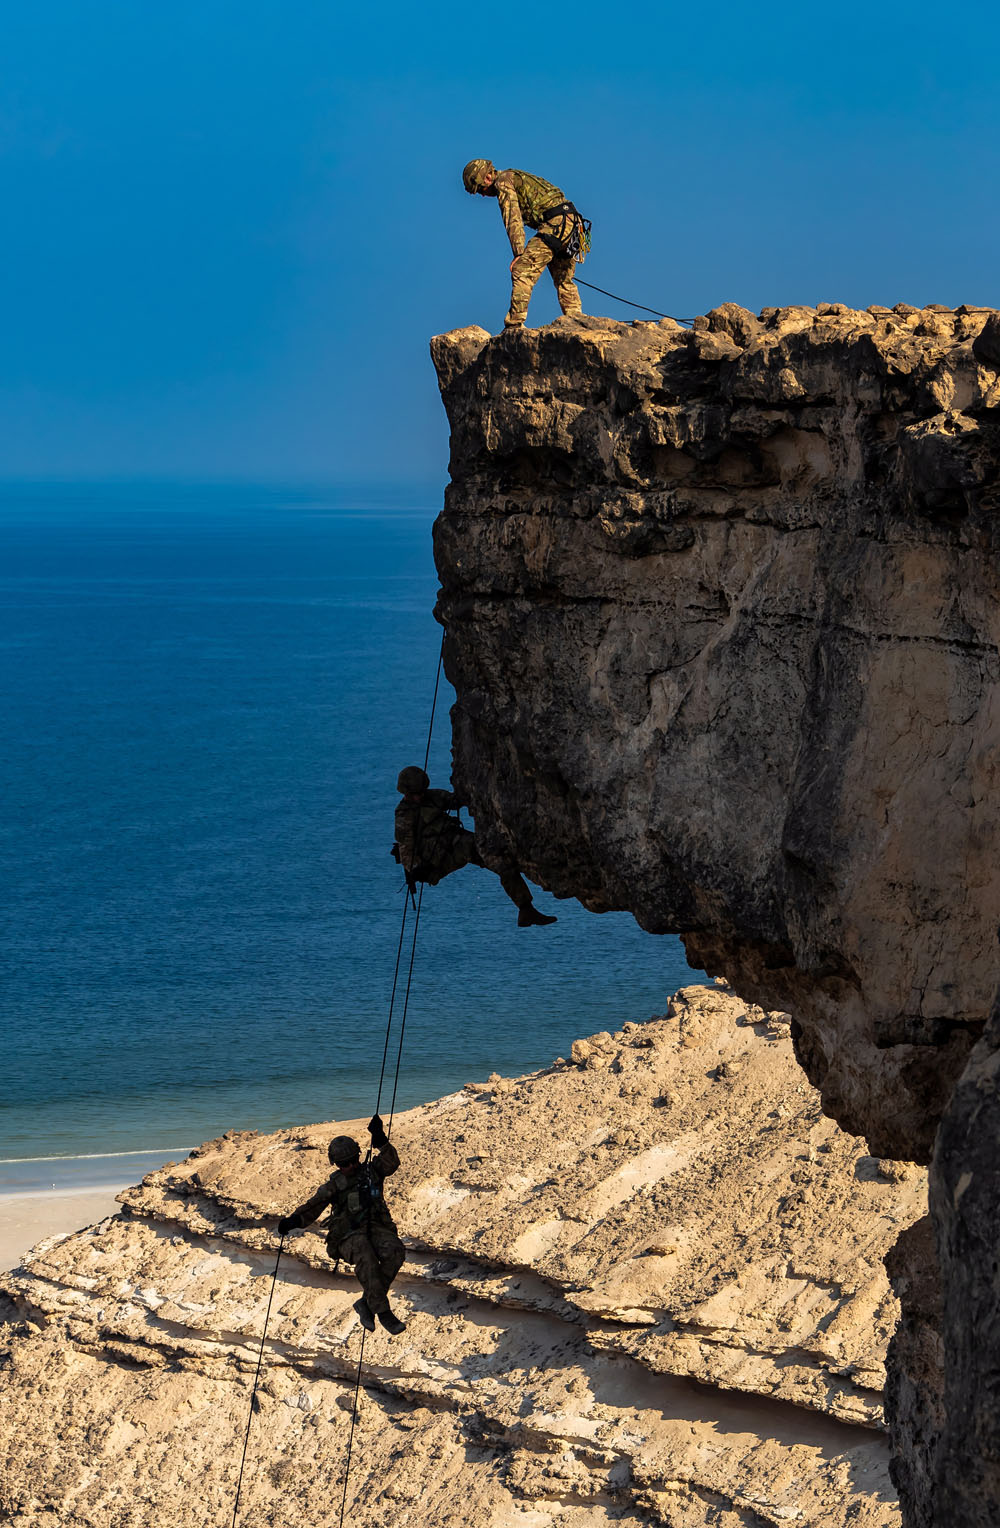 Charlie Company, 40 Commando Royal Marines conducting an abseil in Oman as part of Exercise Saif Saree 3